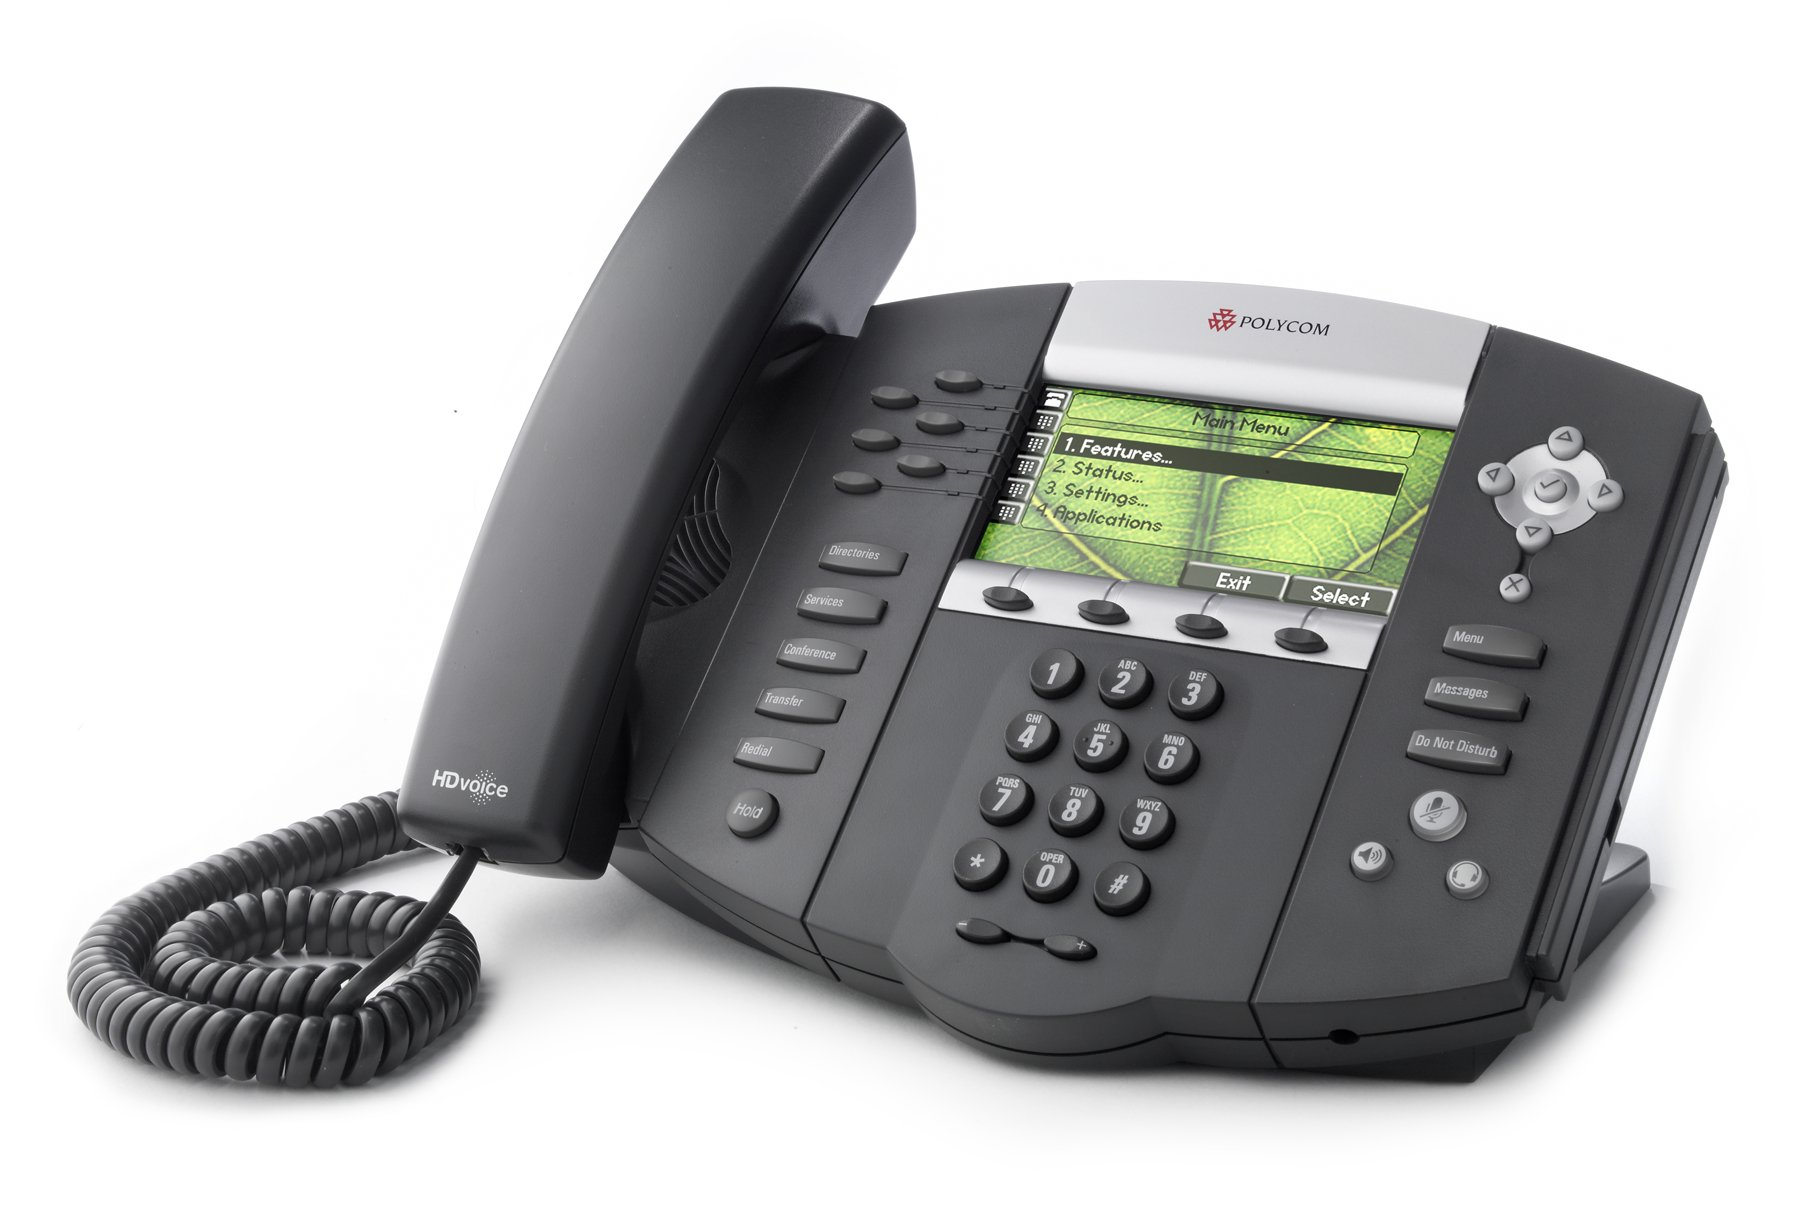 Larger view of Polycom SoundPoint IP 670 VoIP Telephone.